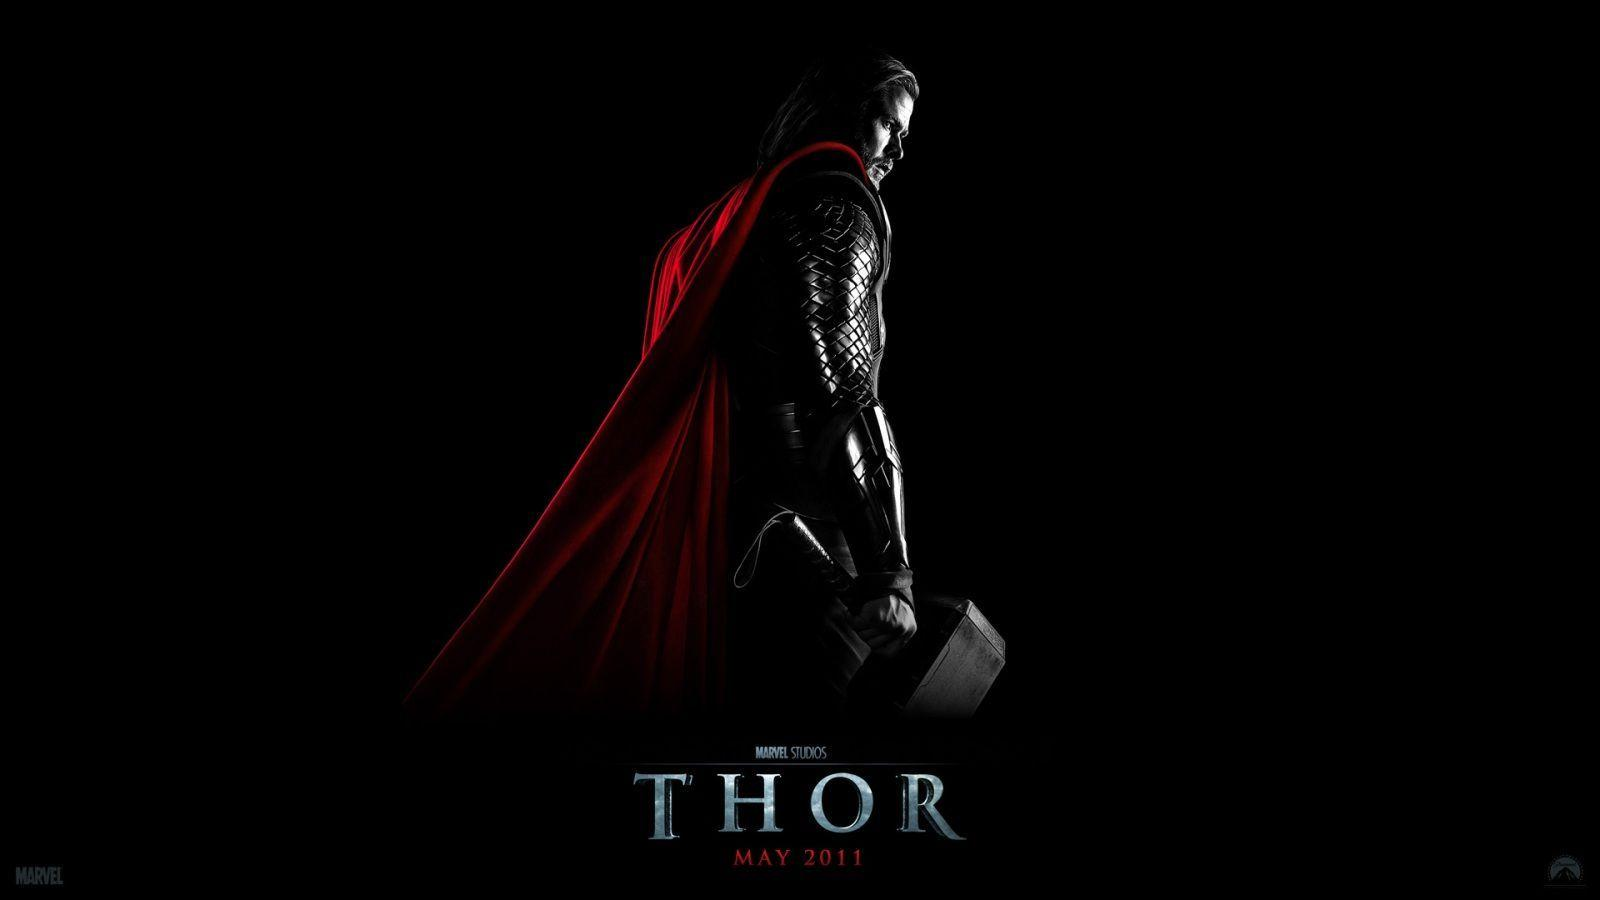 Wallpapers For > Thor Wallpapers Hd For Desktop